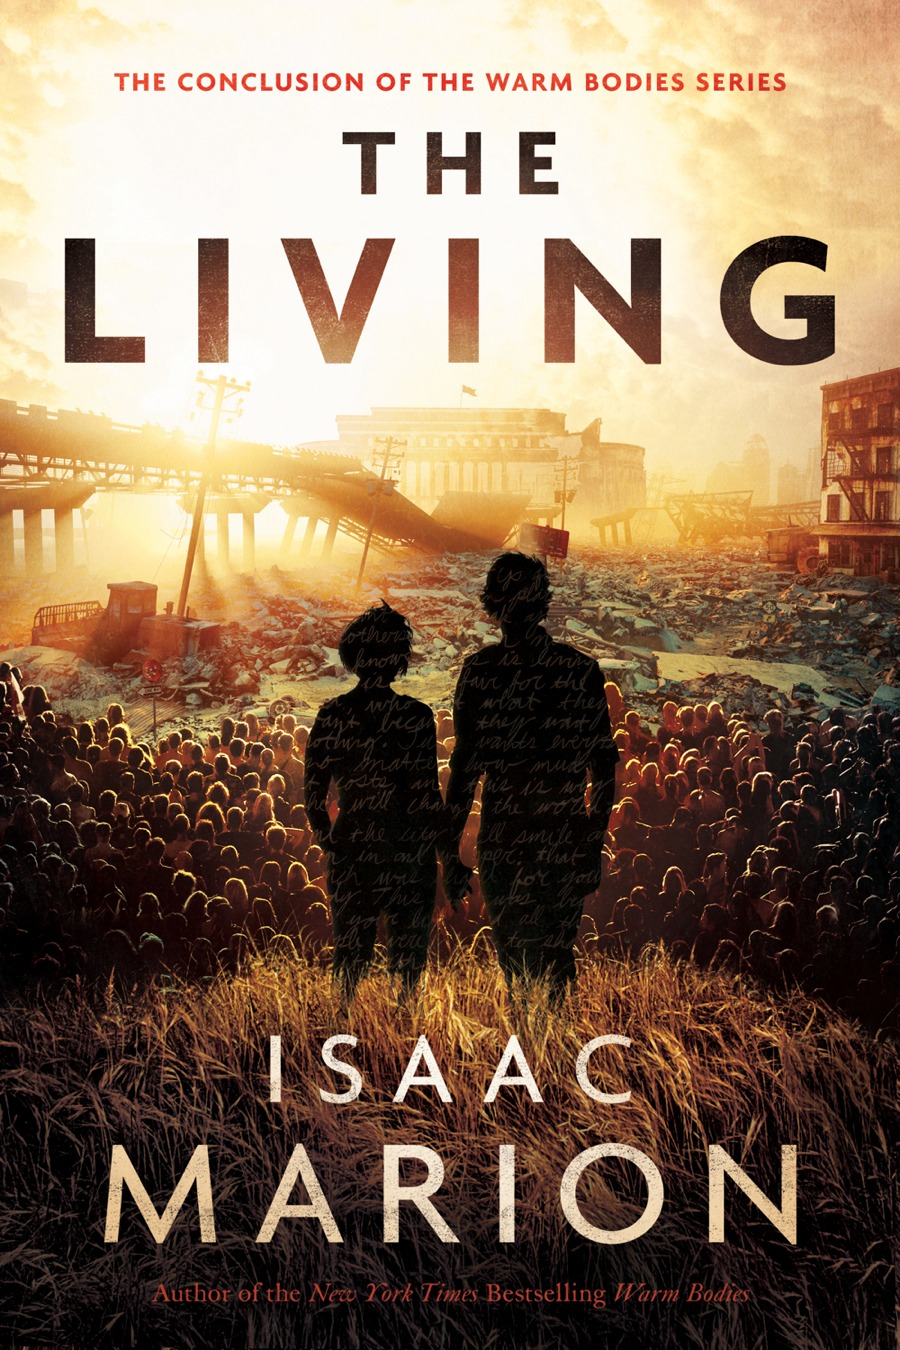 The Living by Isaac Marion